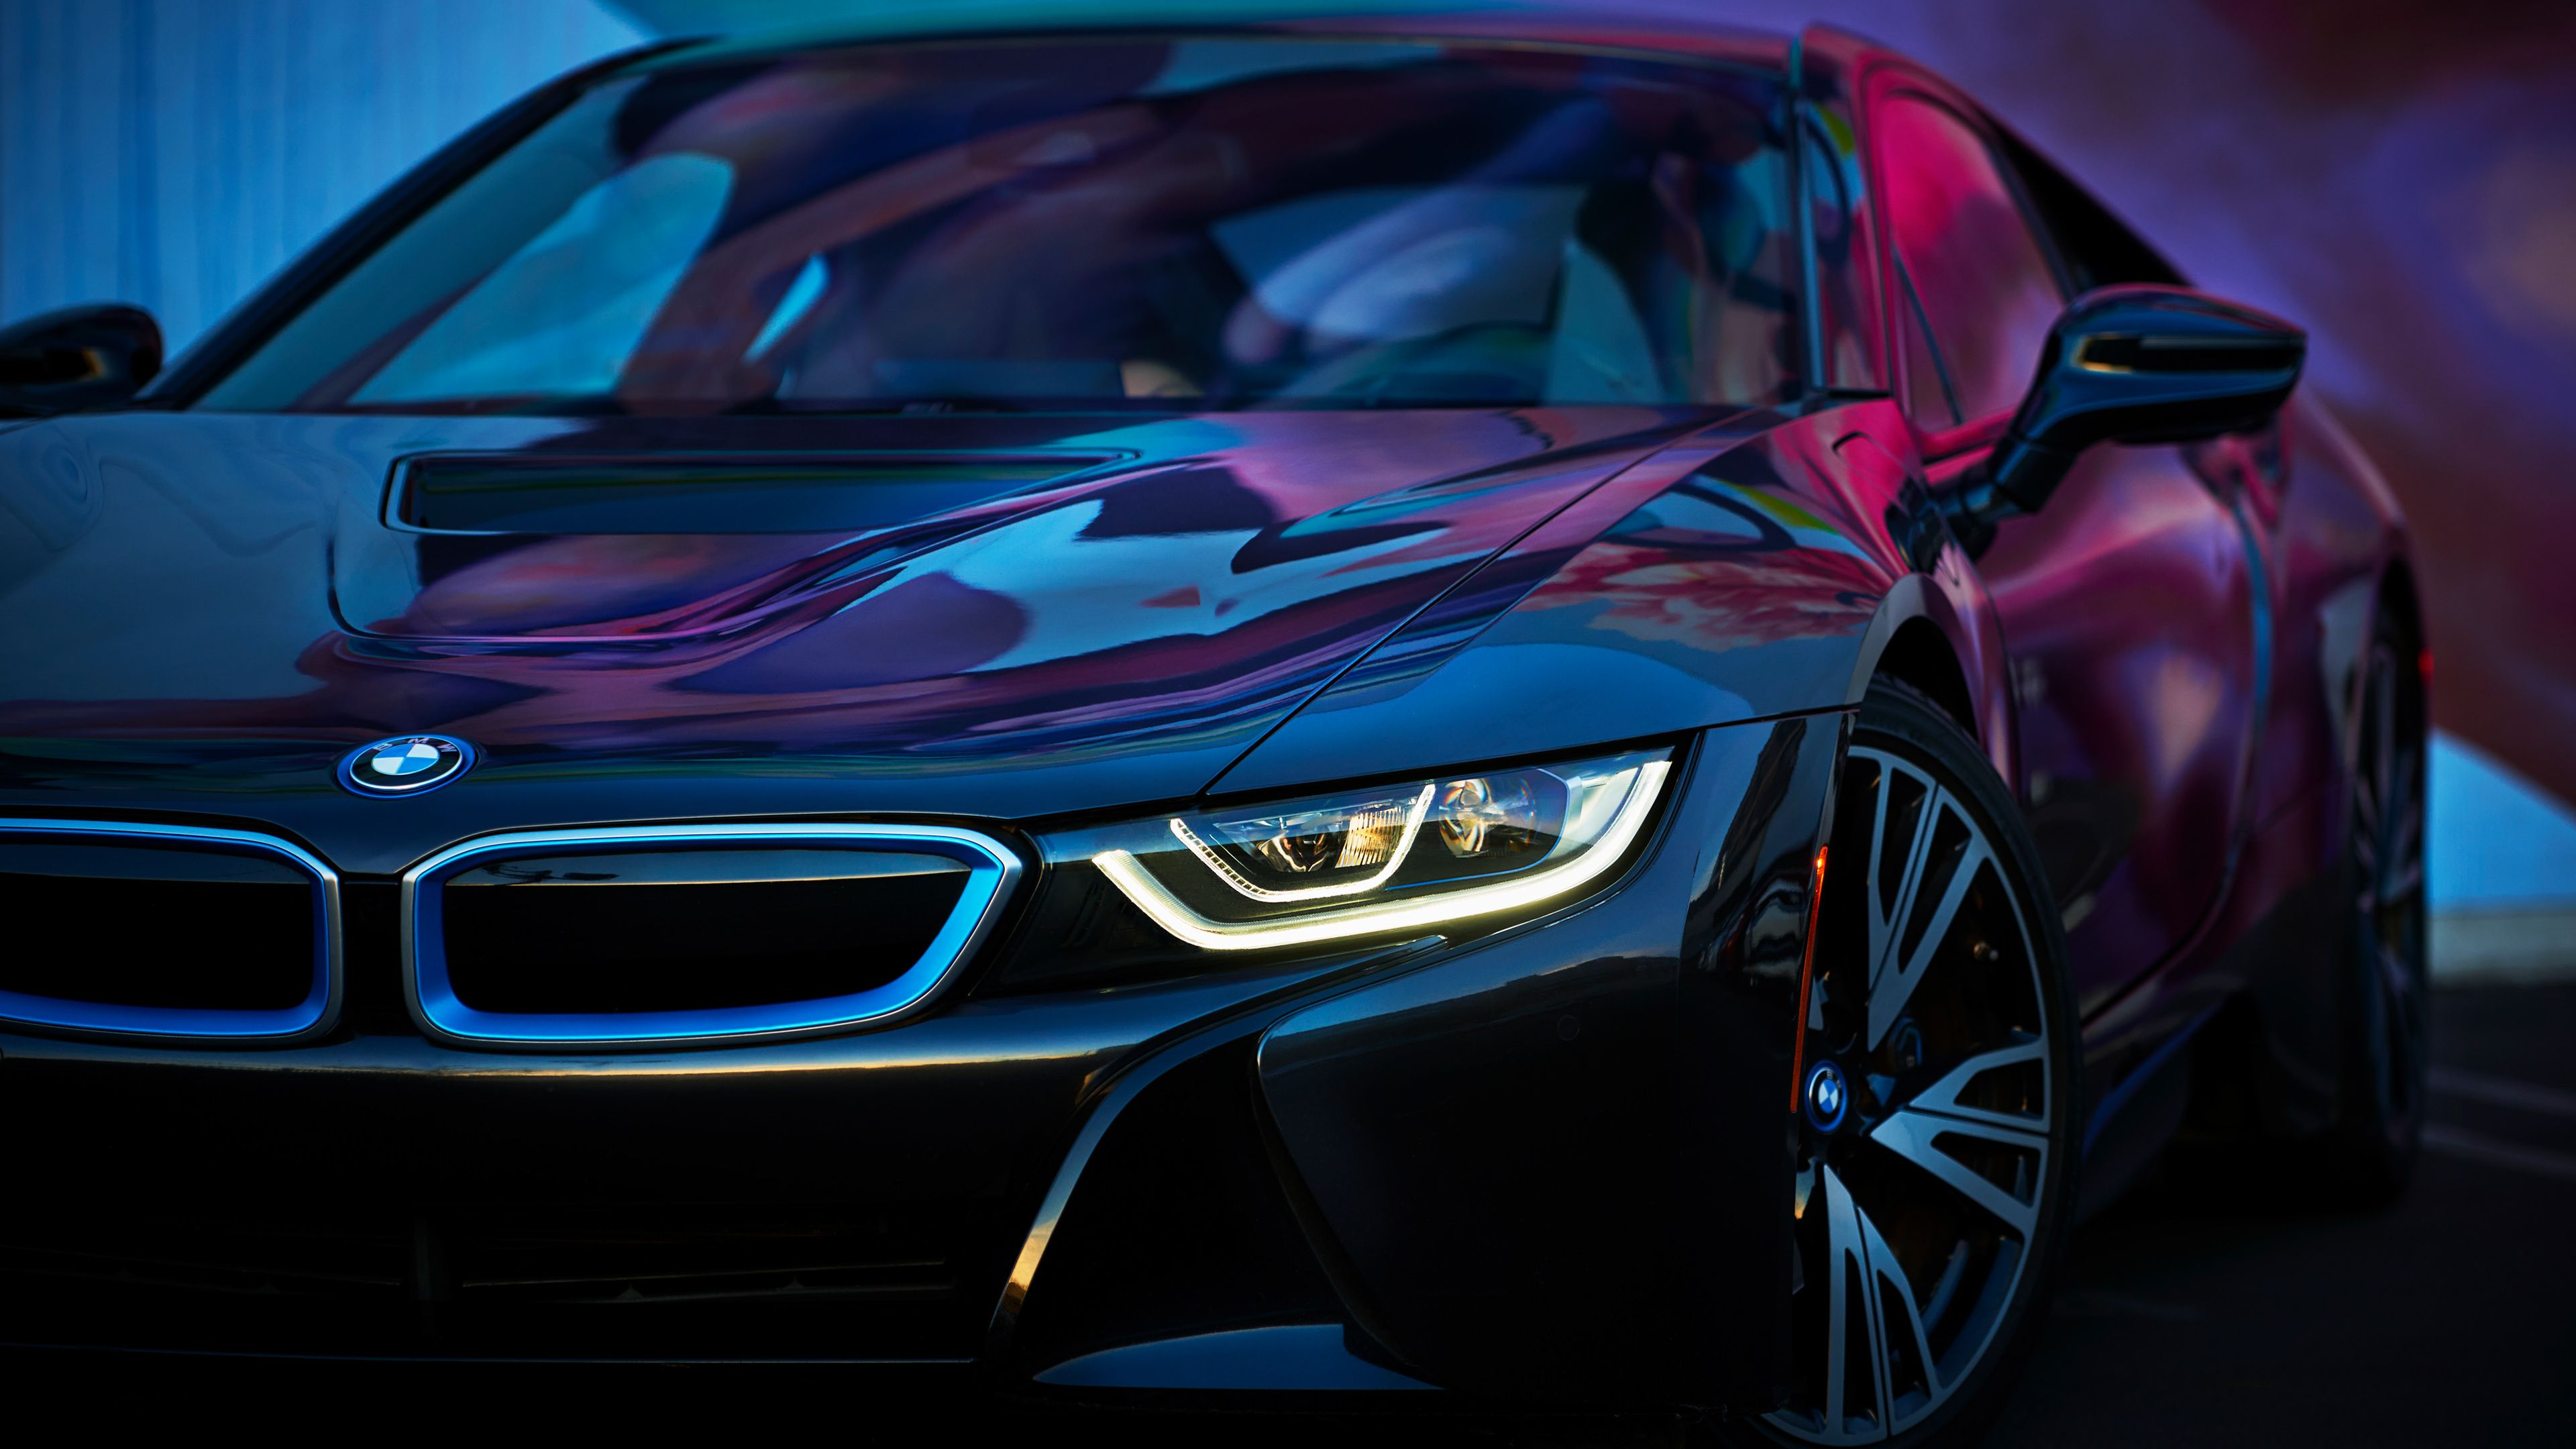 Bmw I8 2018 Hd Wallpapers Cars Wallpapers Bmw Wallpapers Bmw I8